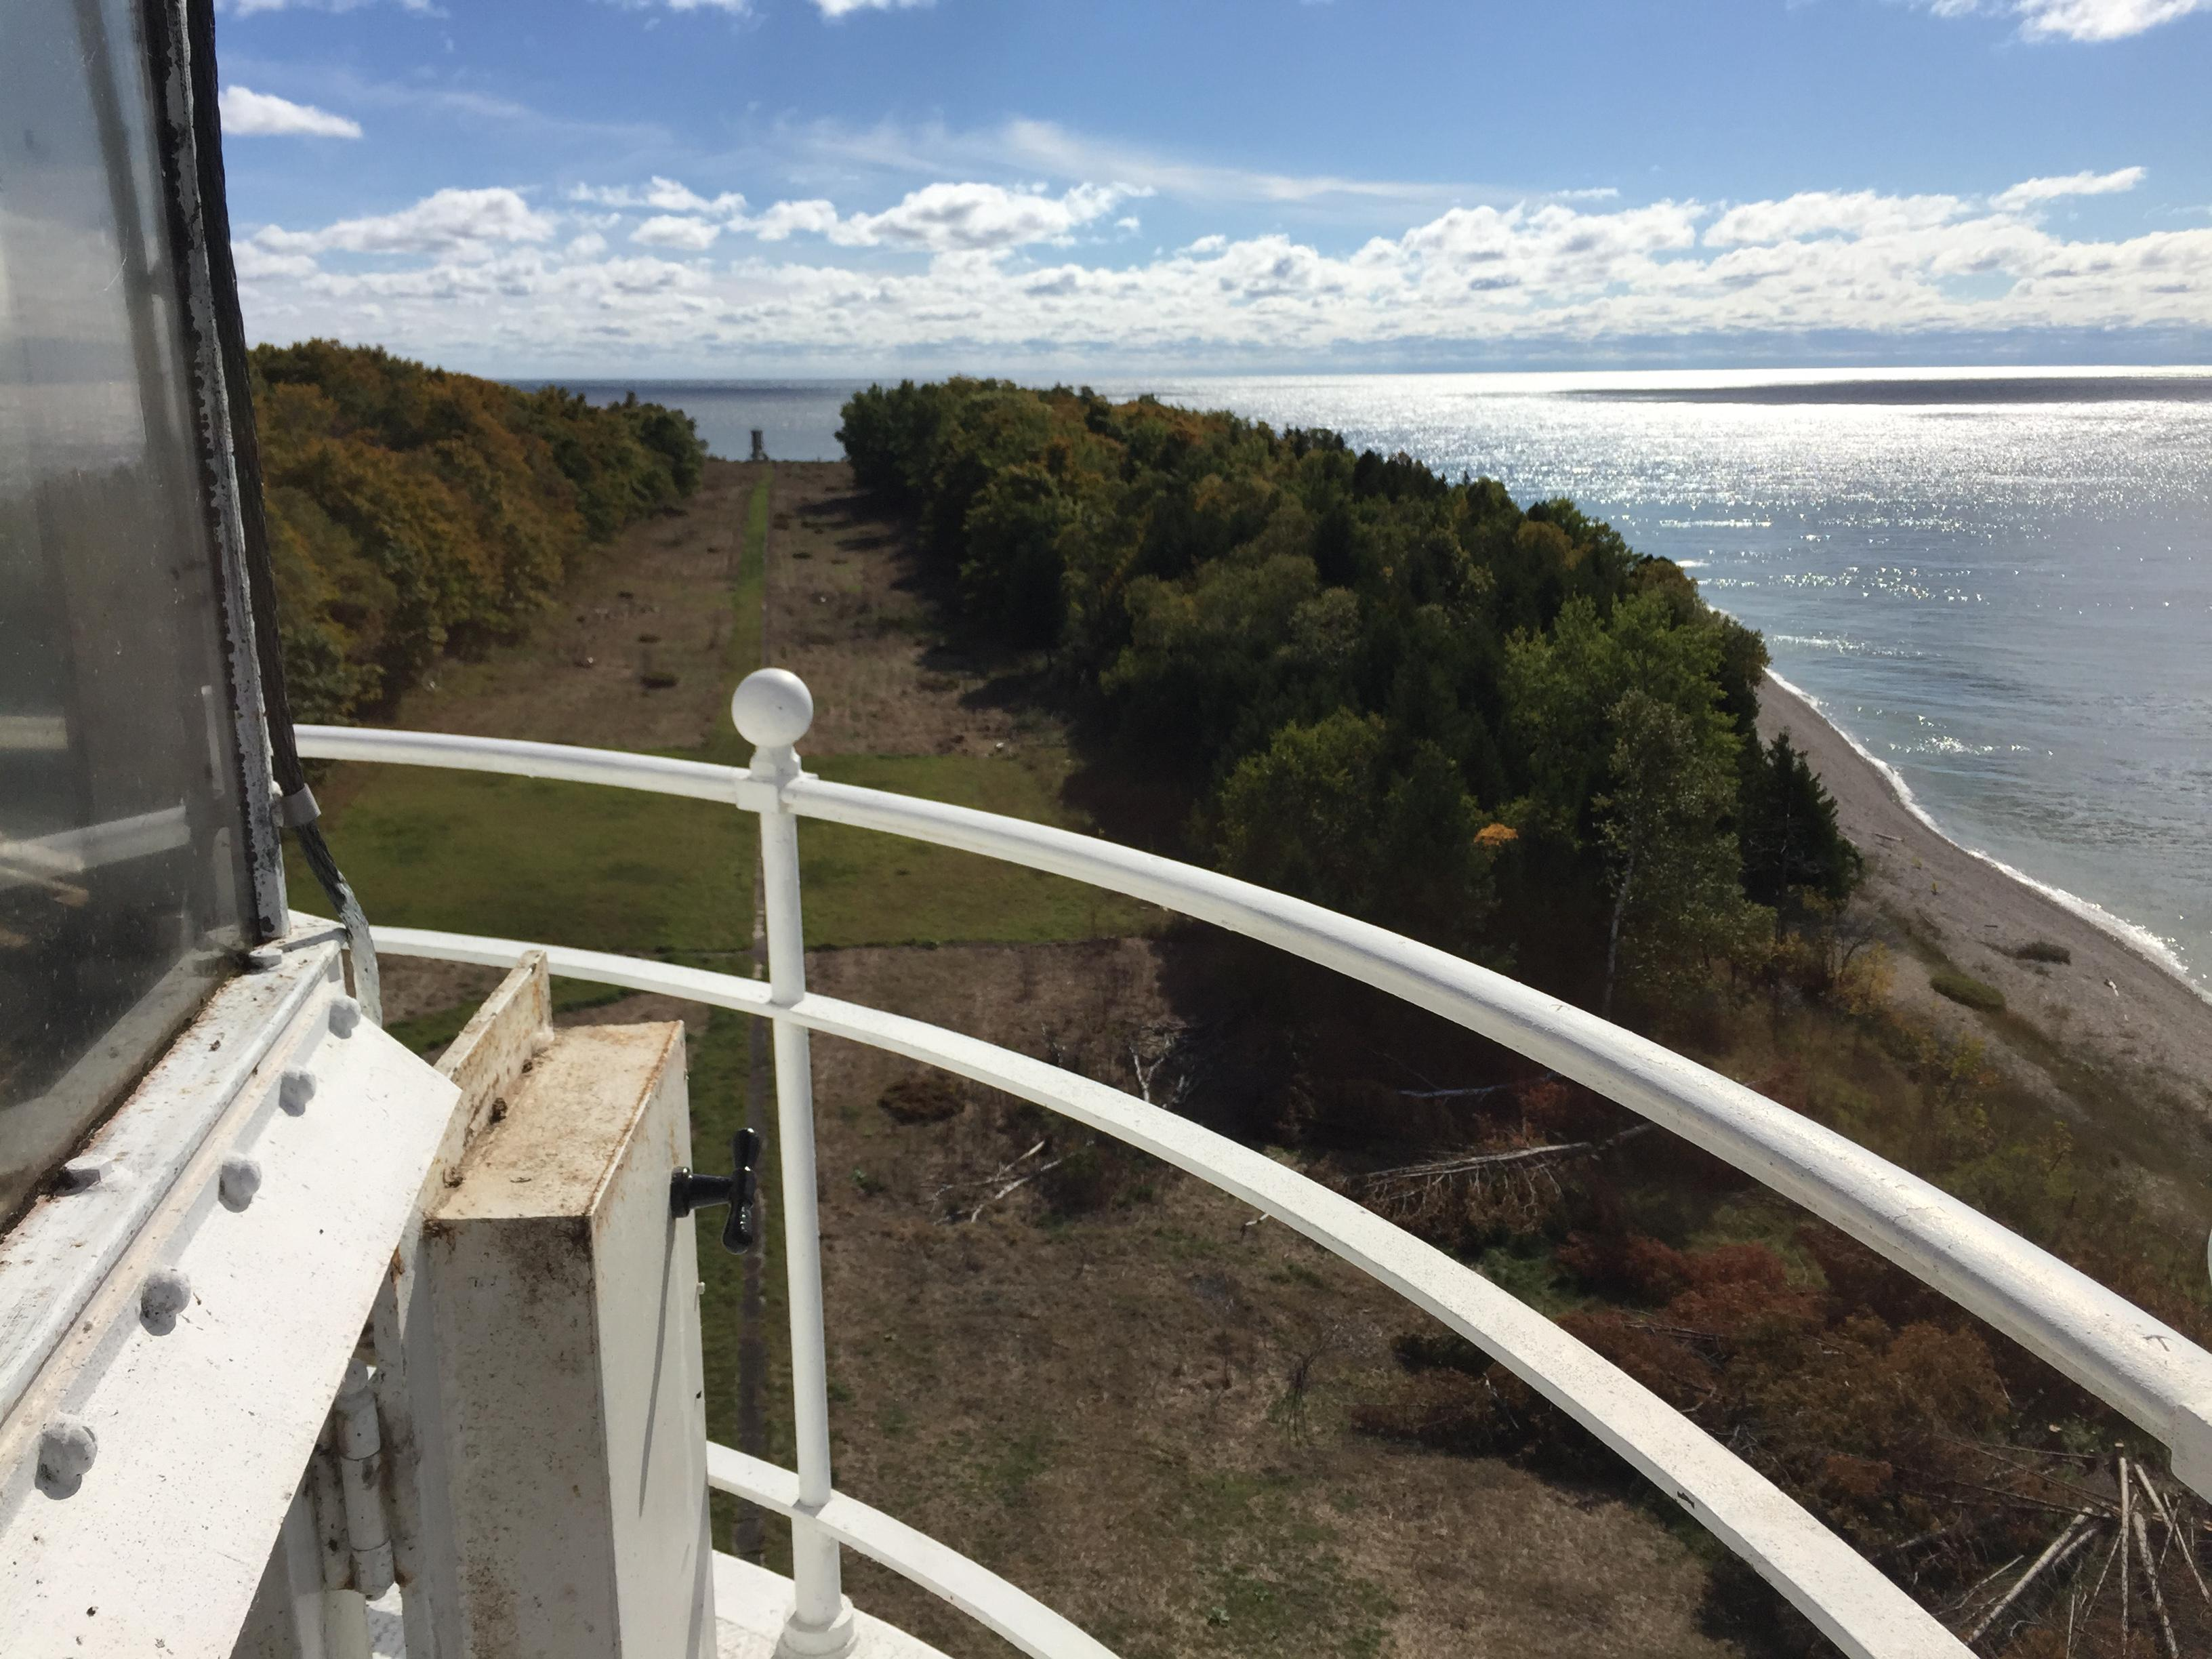 The view of the Death's Door passage as seen from the tower on Plum Island, Oct. 11, 2017. (WLUK/Eric Peterson)